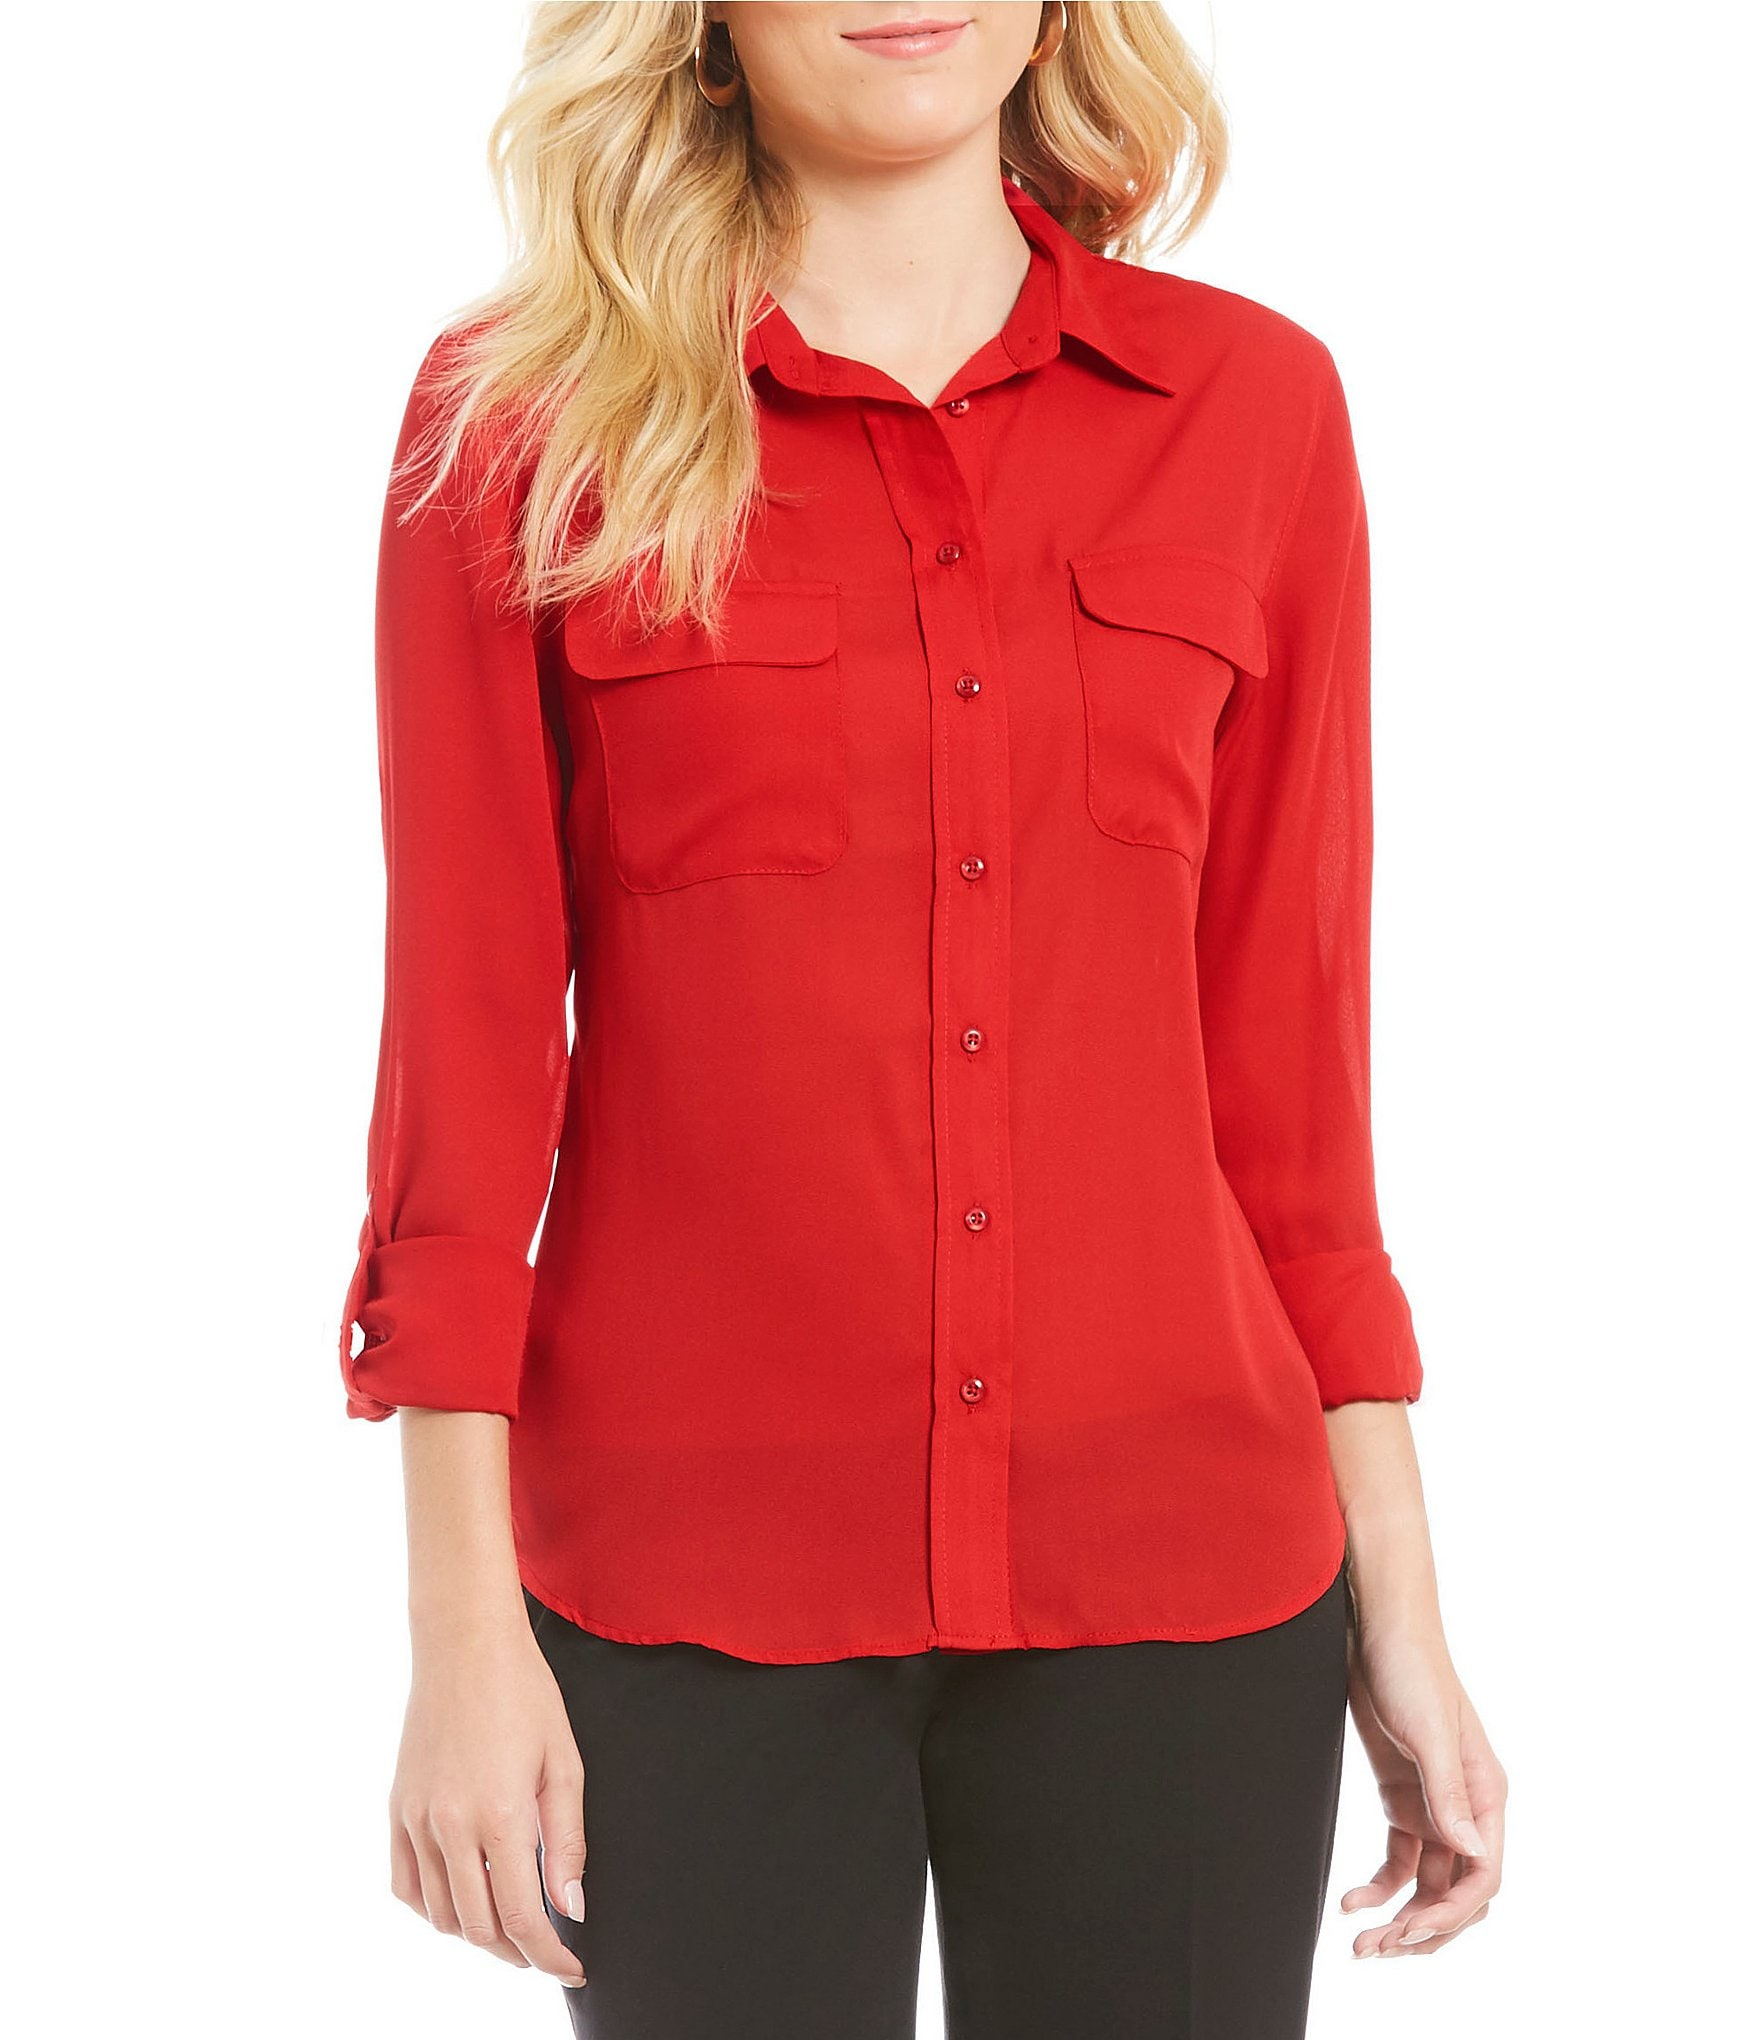 Shop red long sleeves blouse at Neiman Marcus, where you will find free shipping on the latest in fashion from top designers.